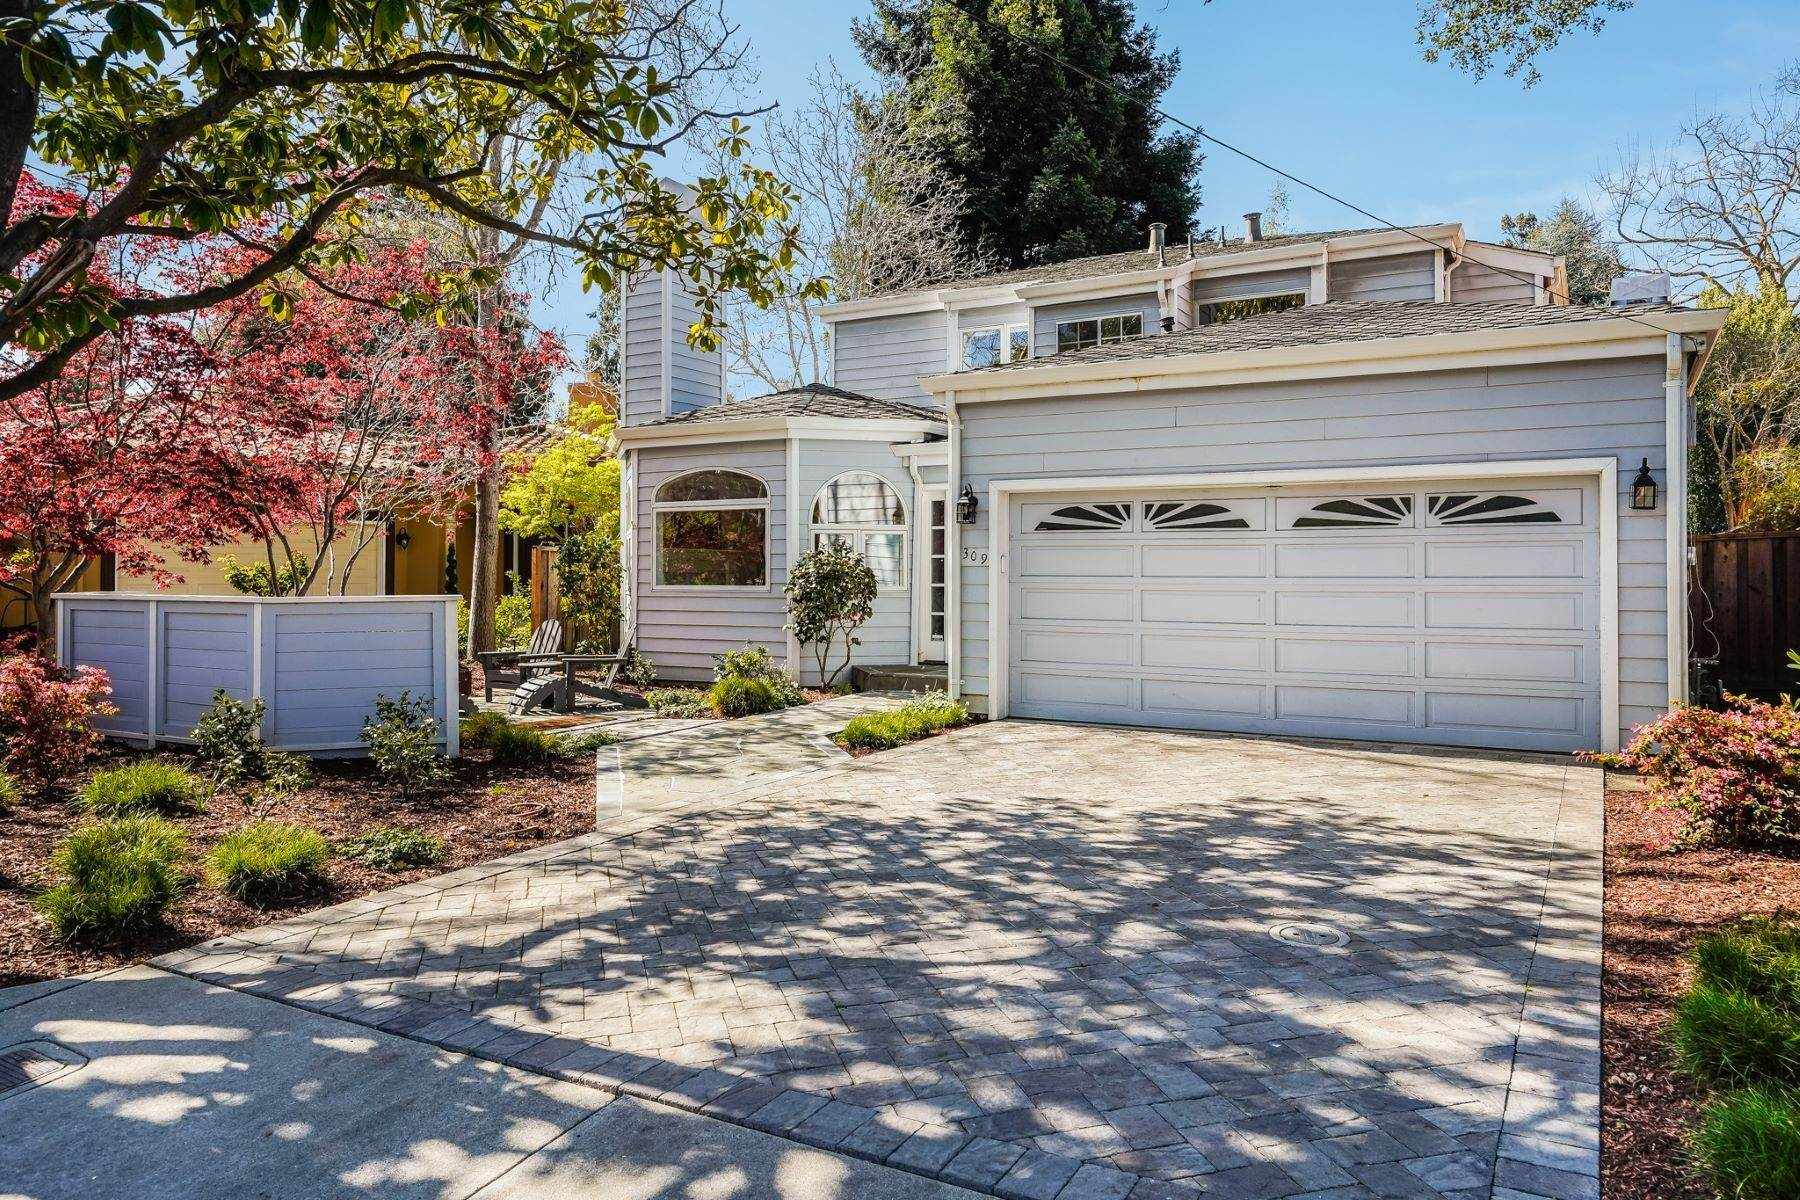 Property for Sale at Comfortable living in Allied Arts, Menlo Park 309 University Drive Menlo Park, California 94025 United States